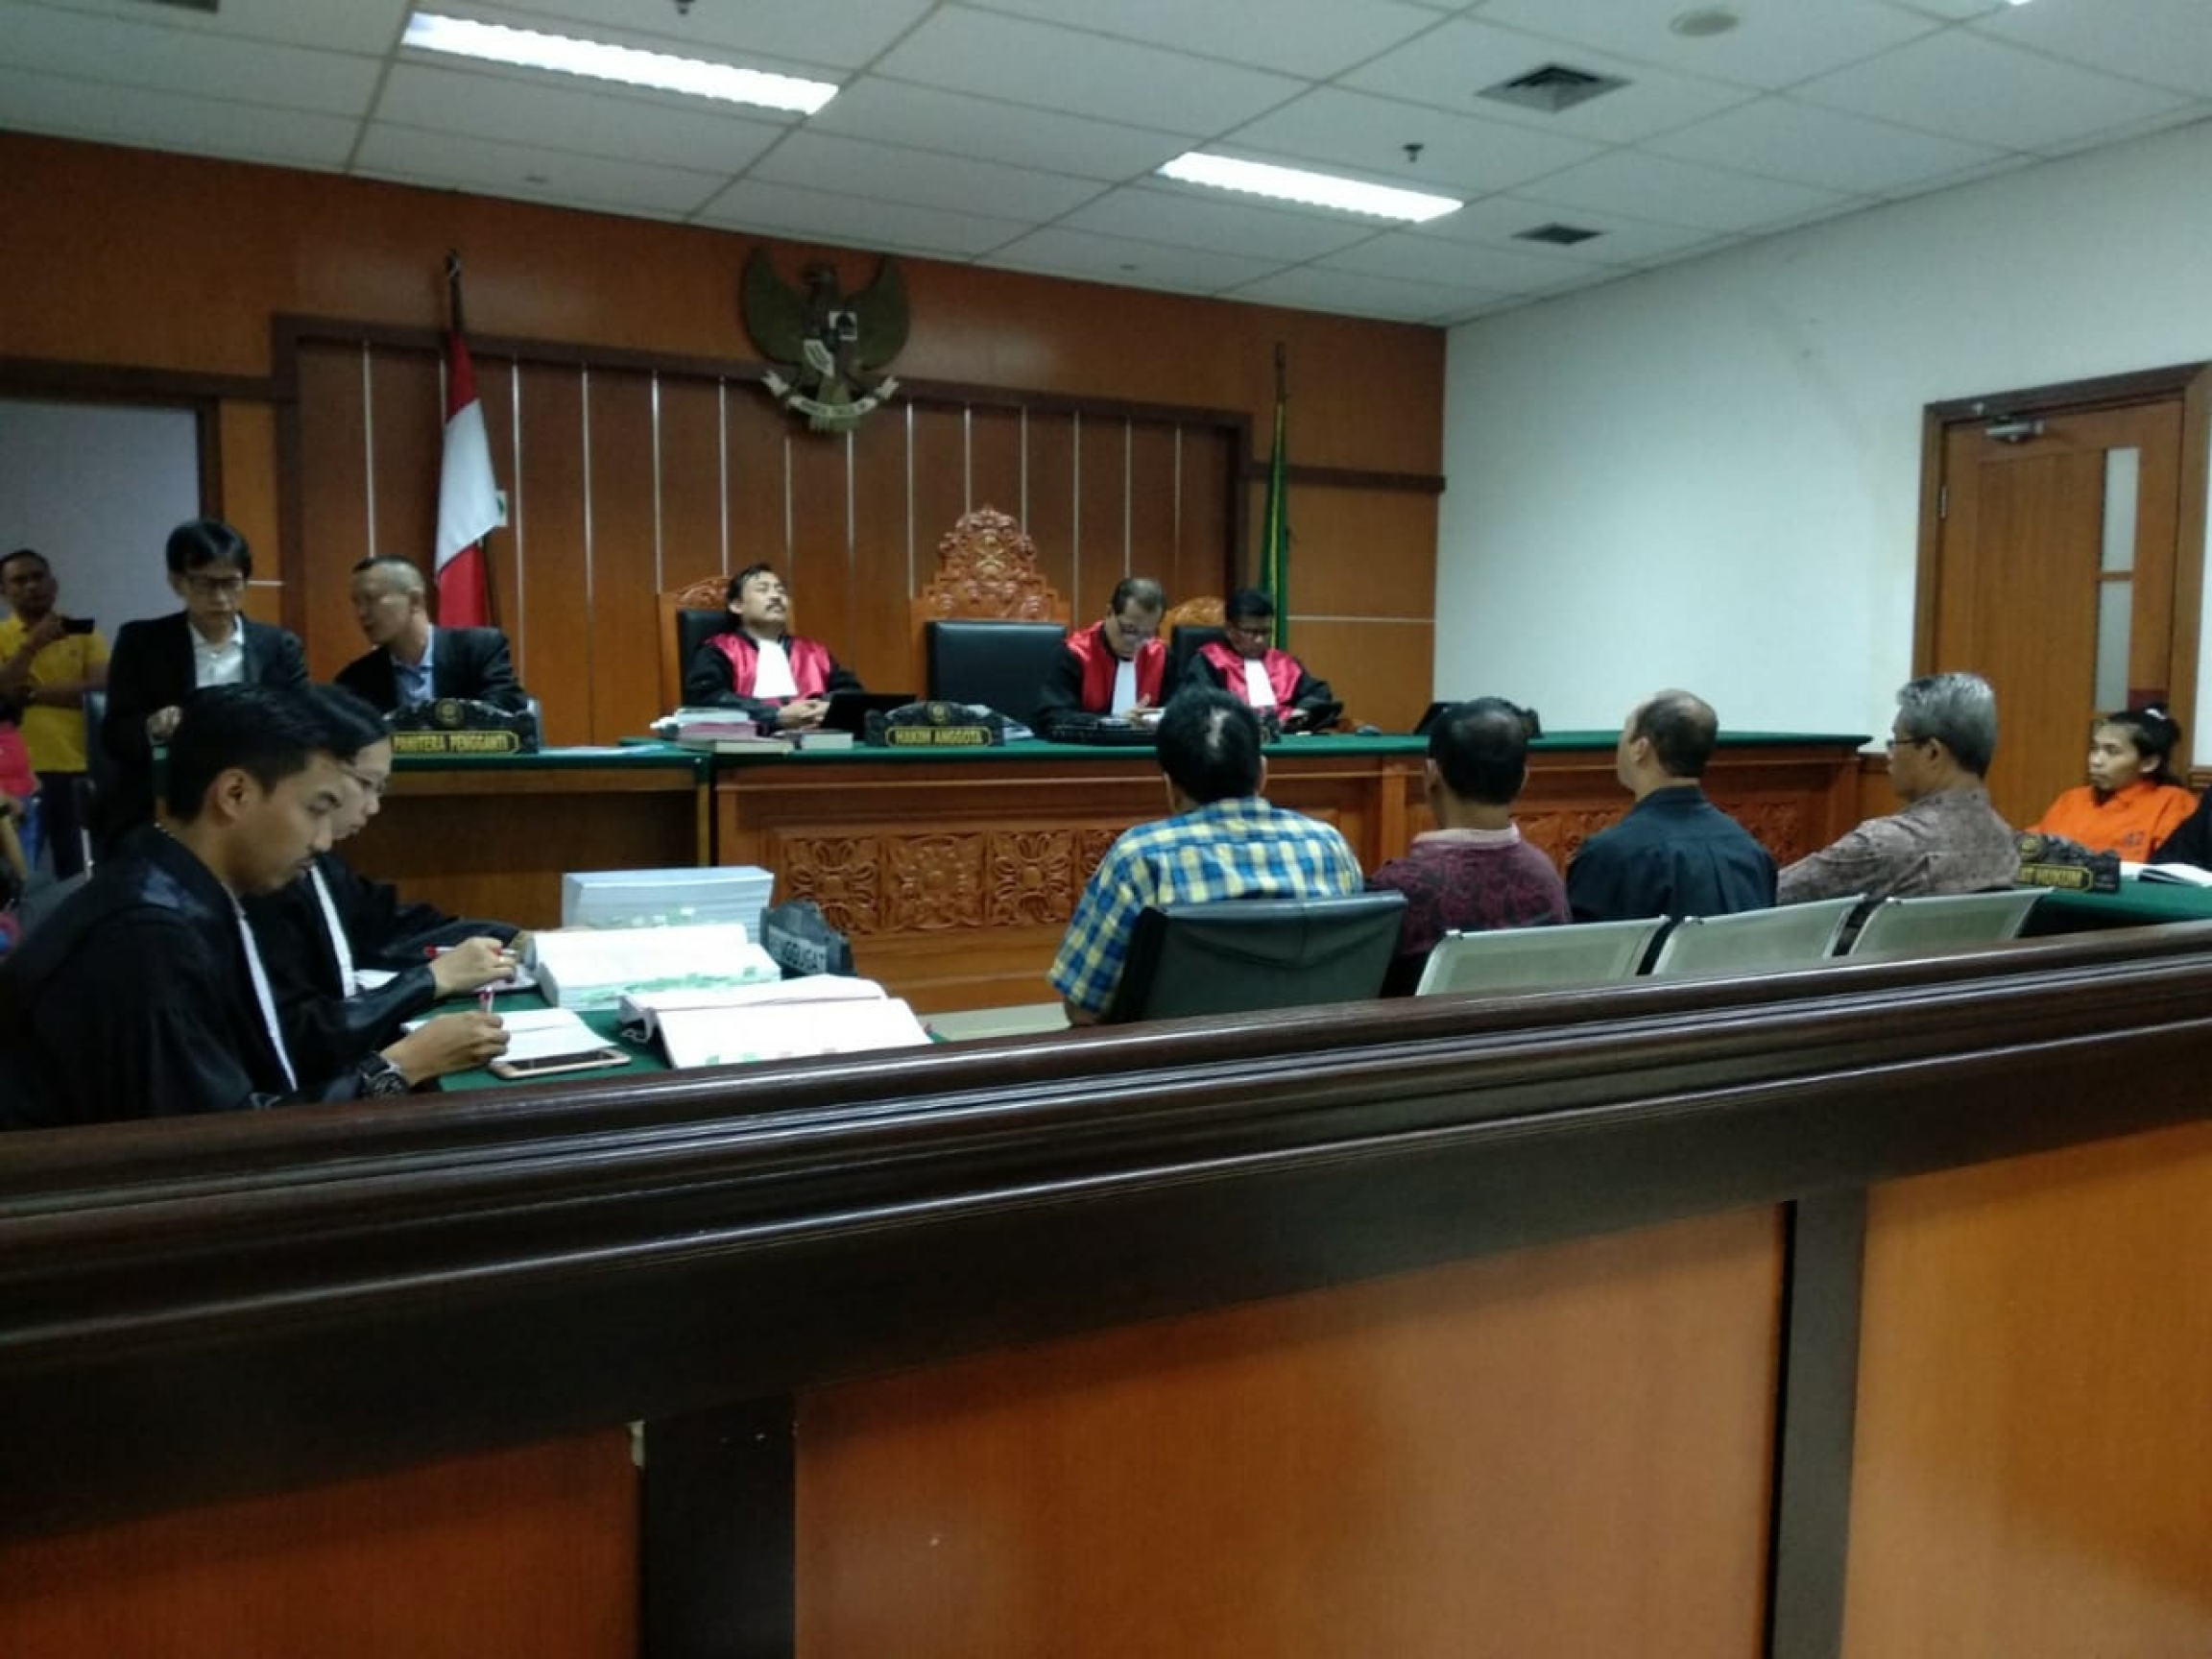 Courtroom scene with four witnesses and judge